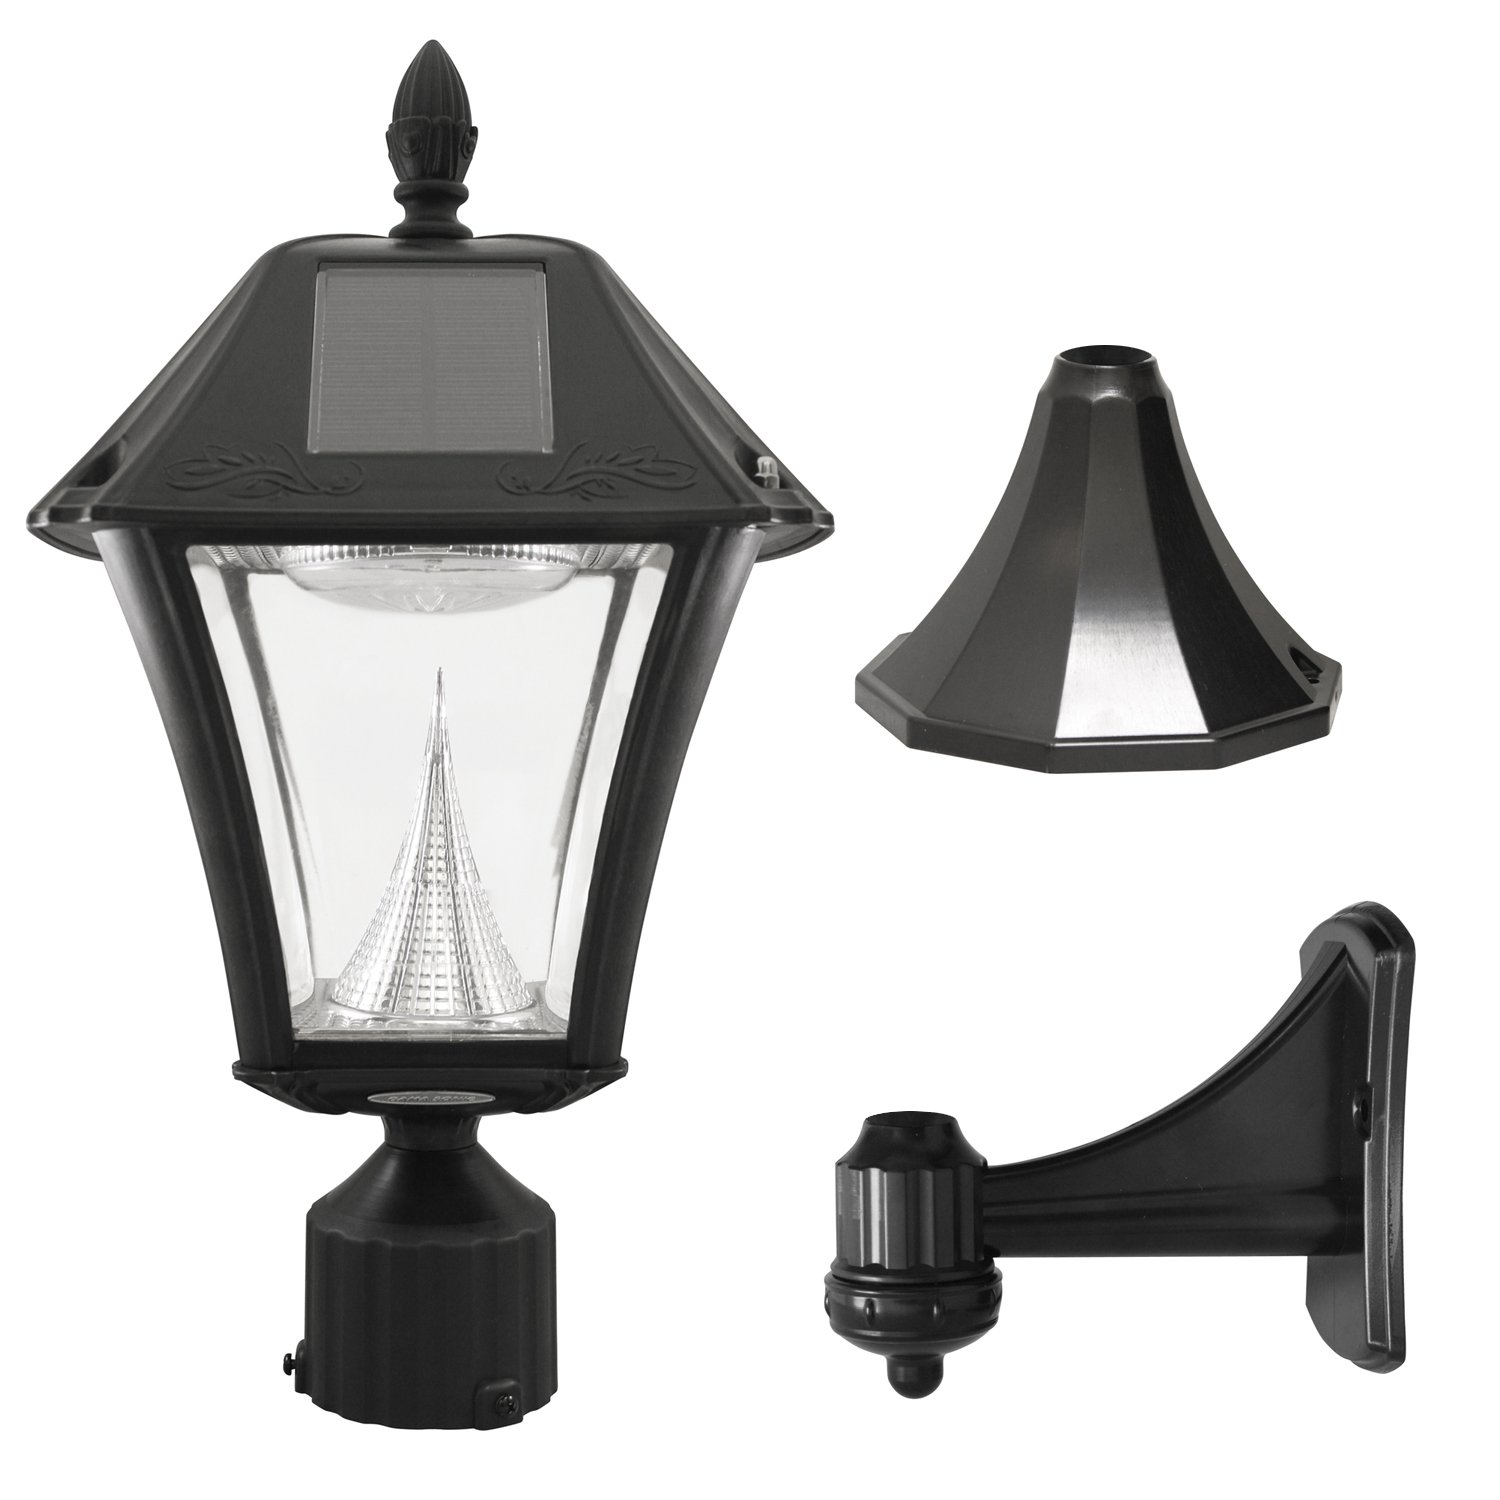 Gama Sonic Baytown II Solar Outdoor Lamp with Bright-White LEDs - Pole/Pier/Wall Mount Kit - Black Finish